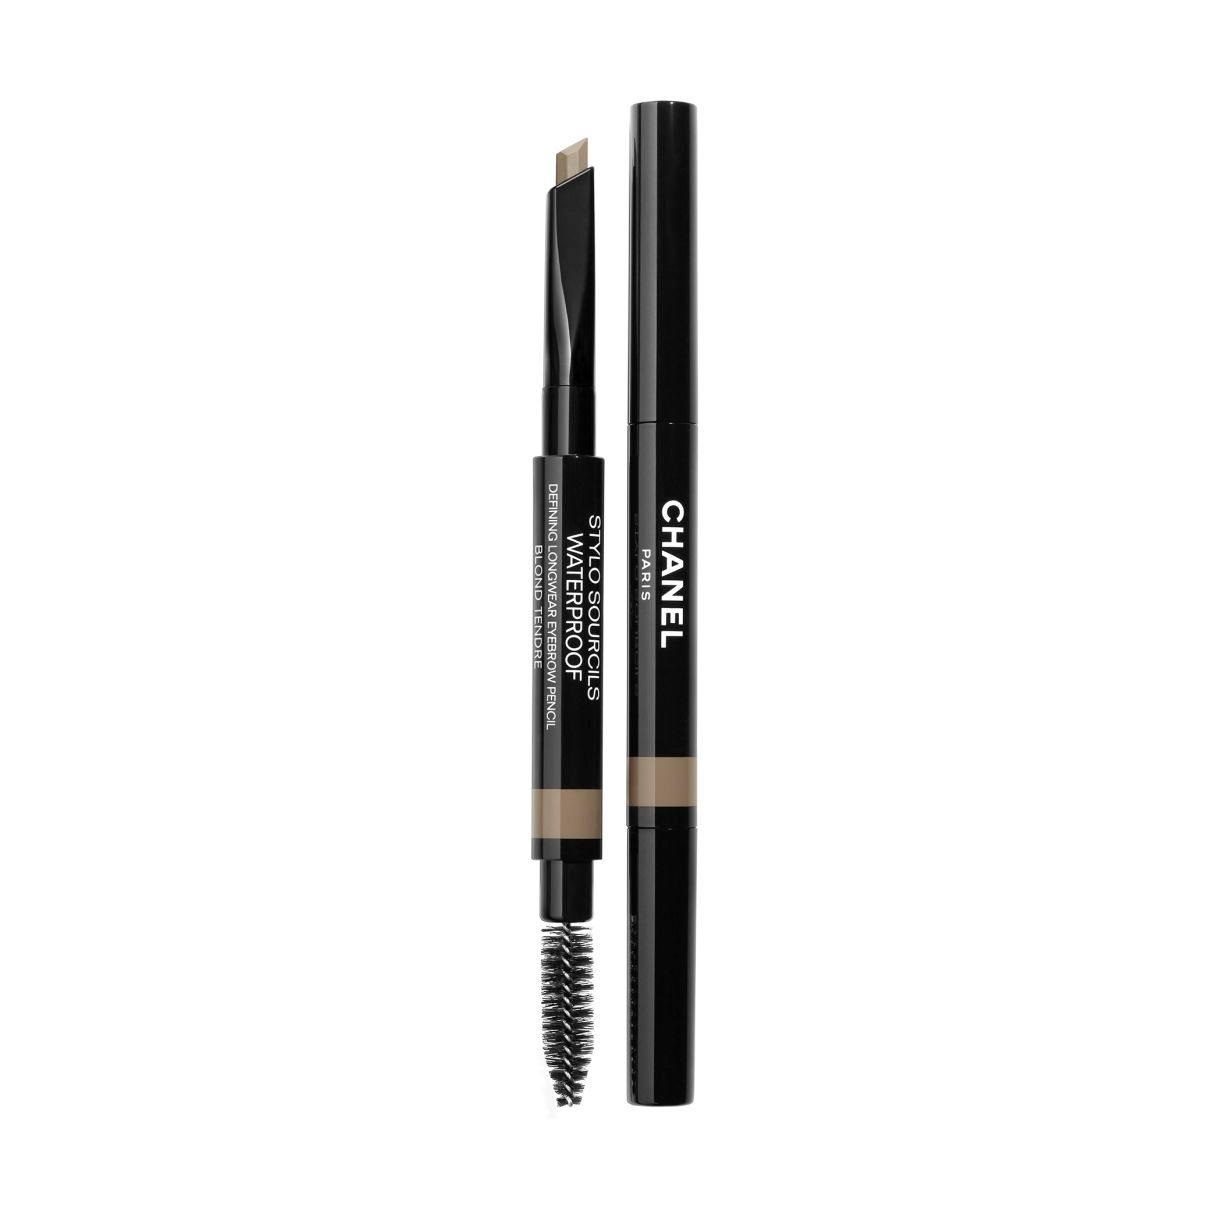 STYLO SOURCILS WATERPROOF 防水眉筆